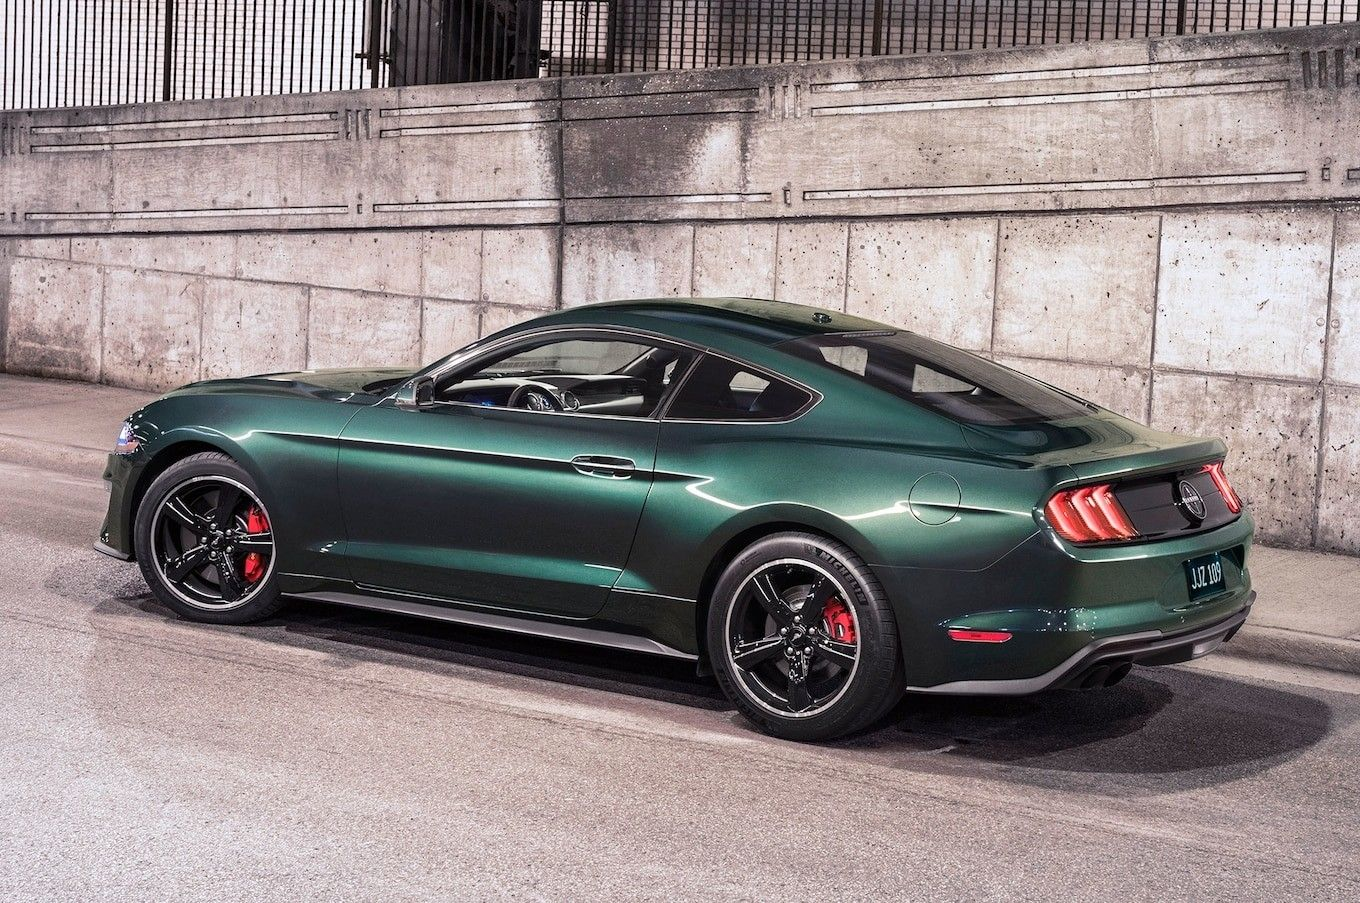 2019 ford mustang gt500 review specs and release dateredesign price